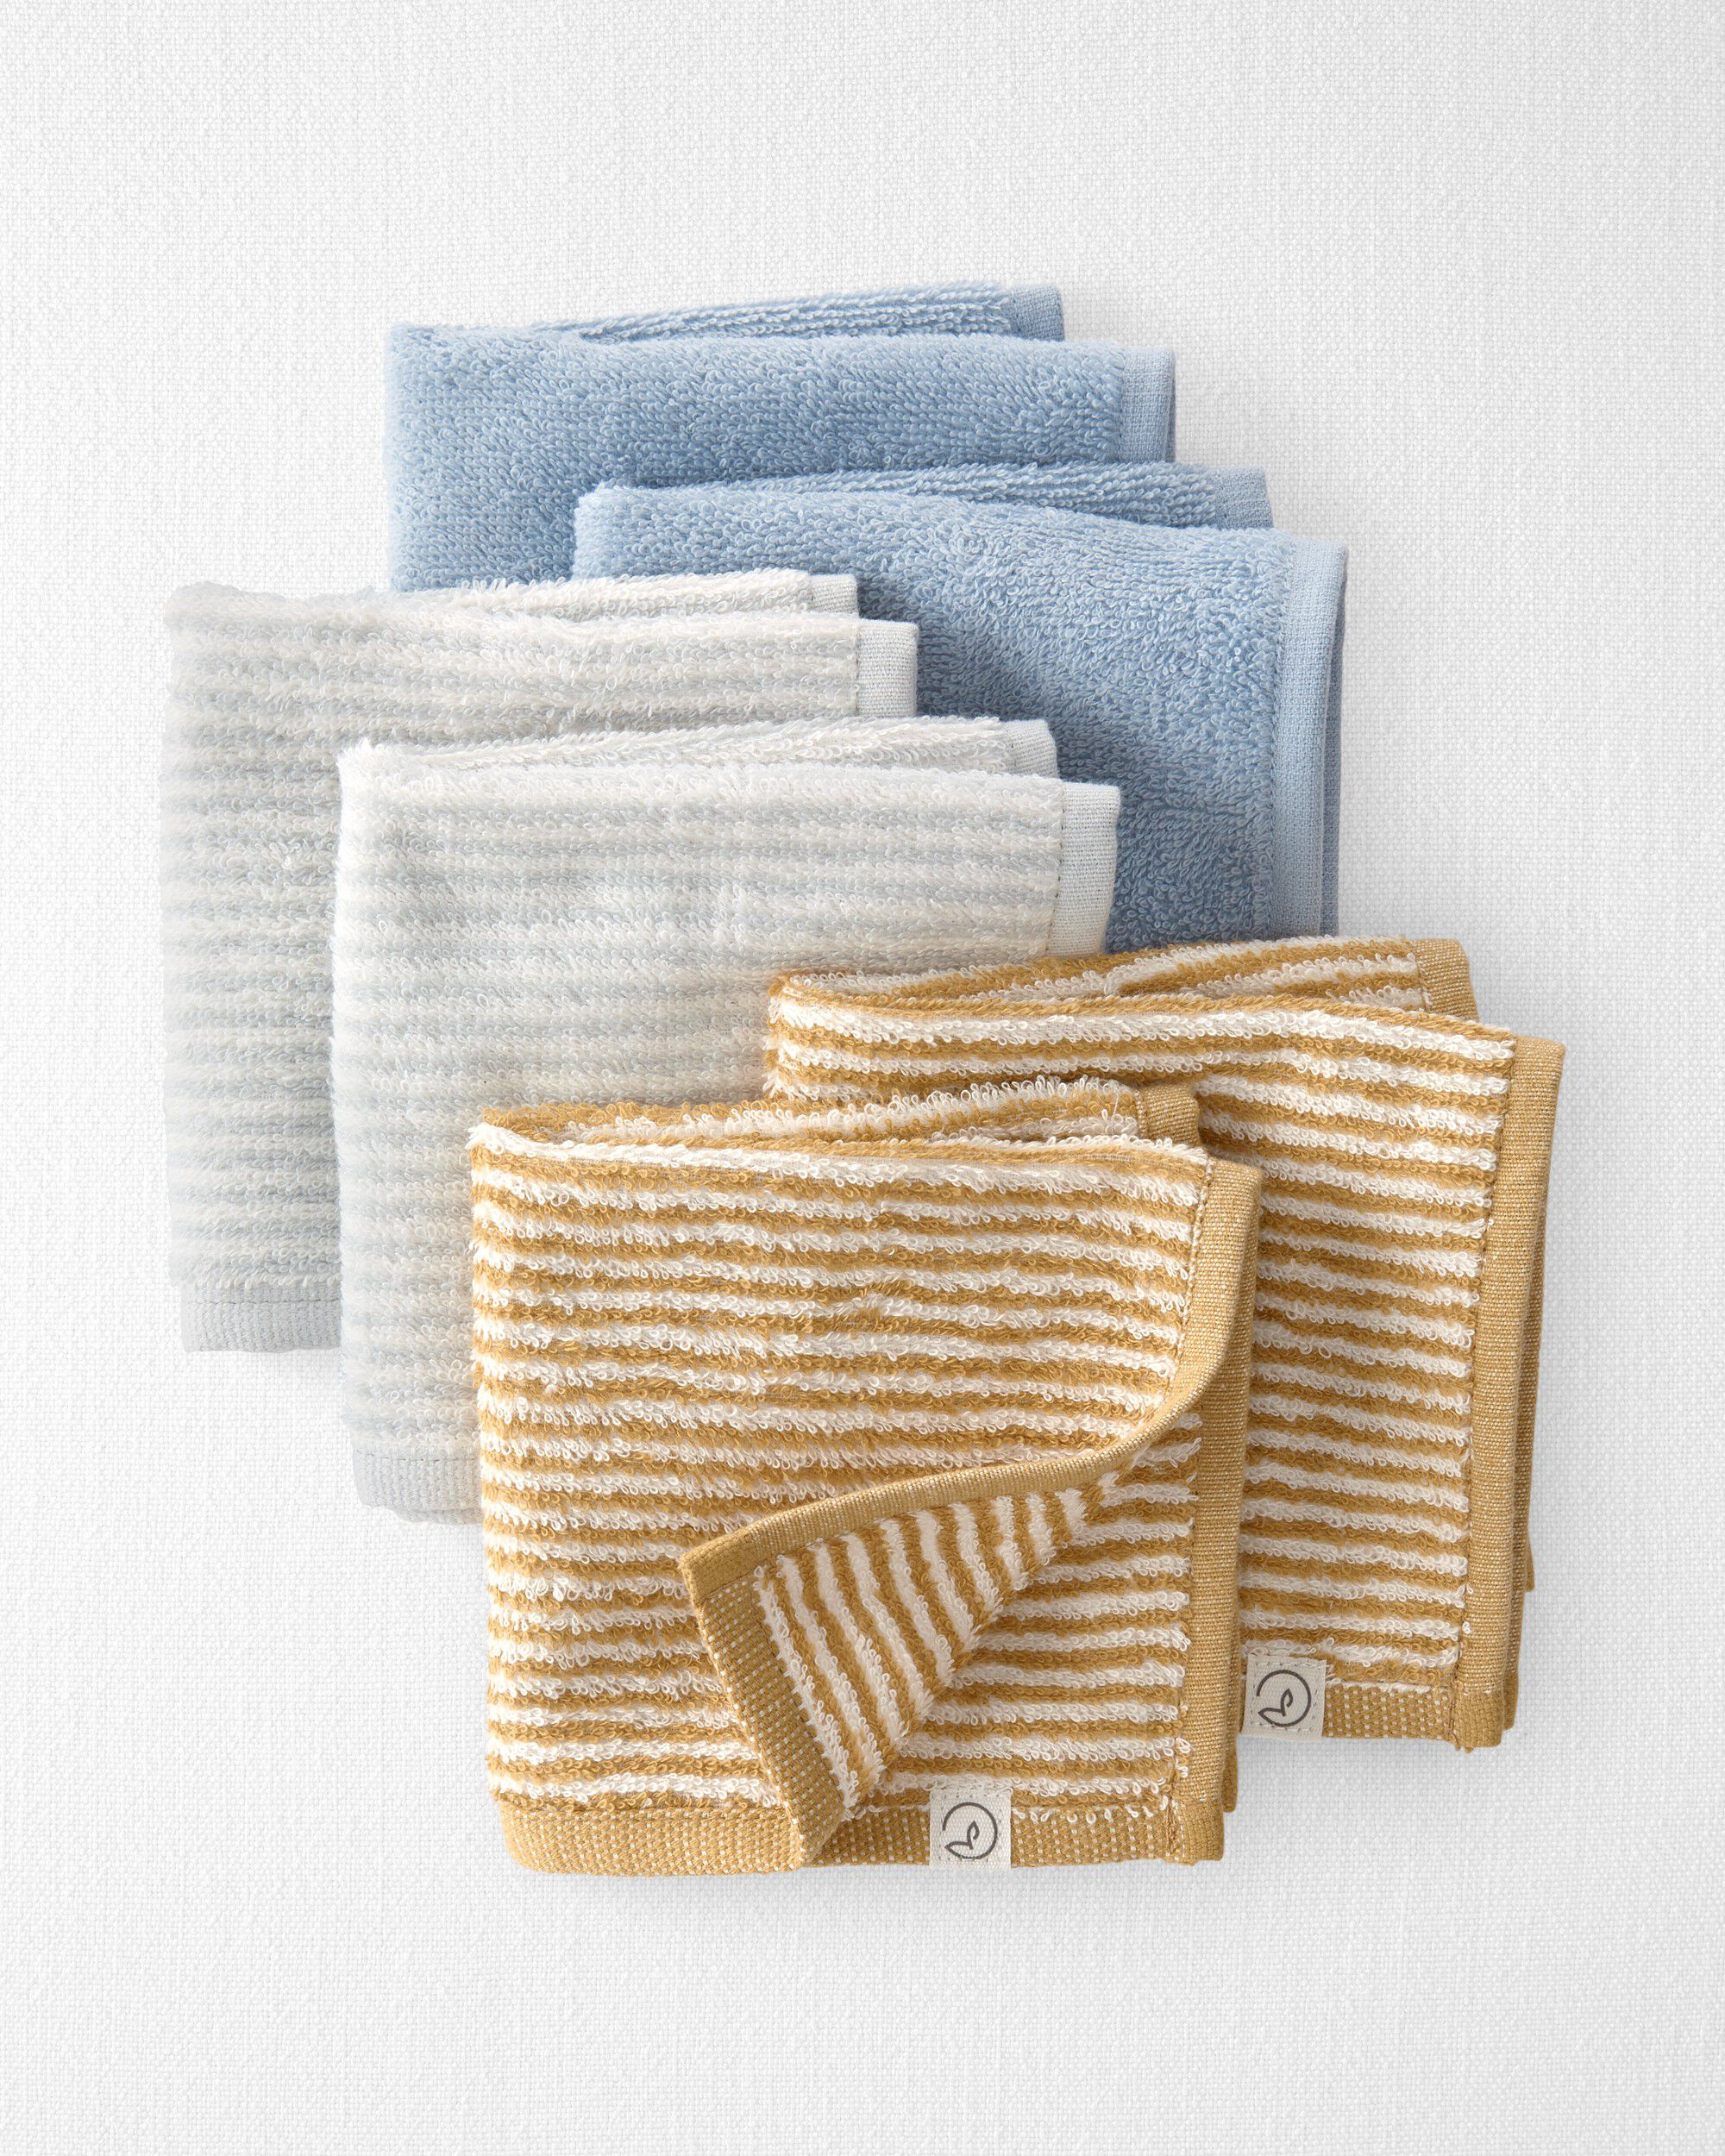 Carters 6-Pack Certified Organic Cotton Wash Cloths